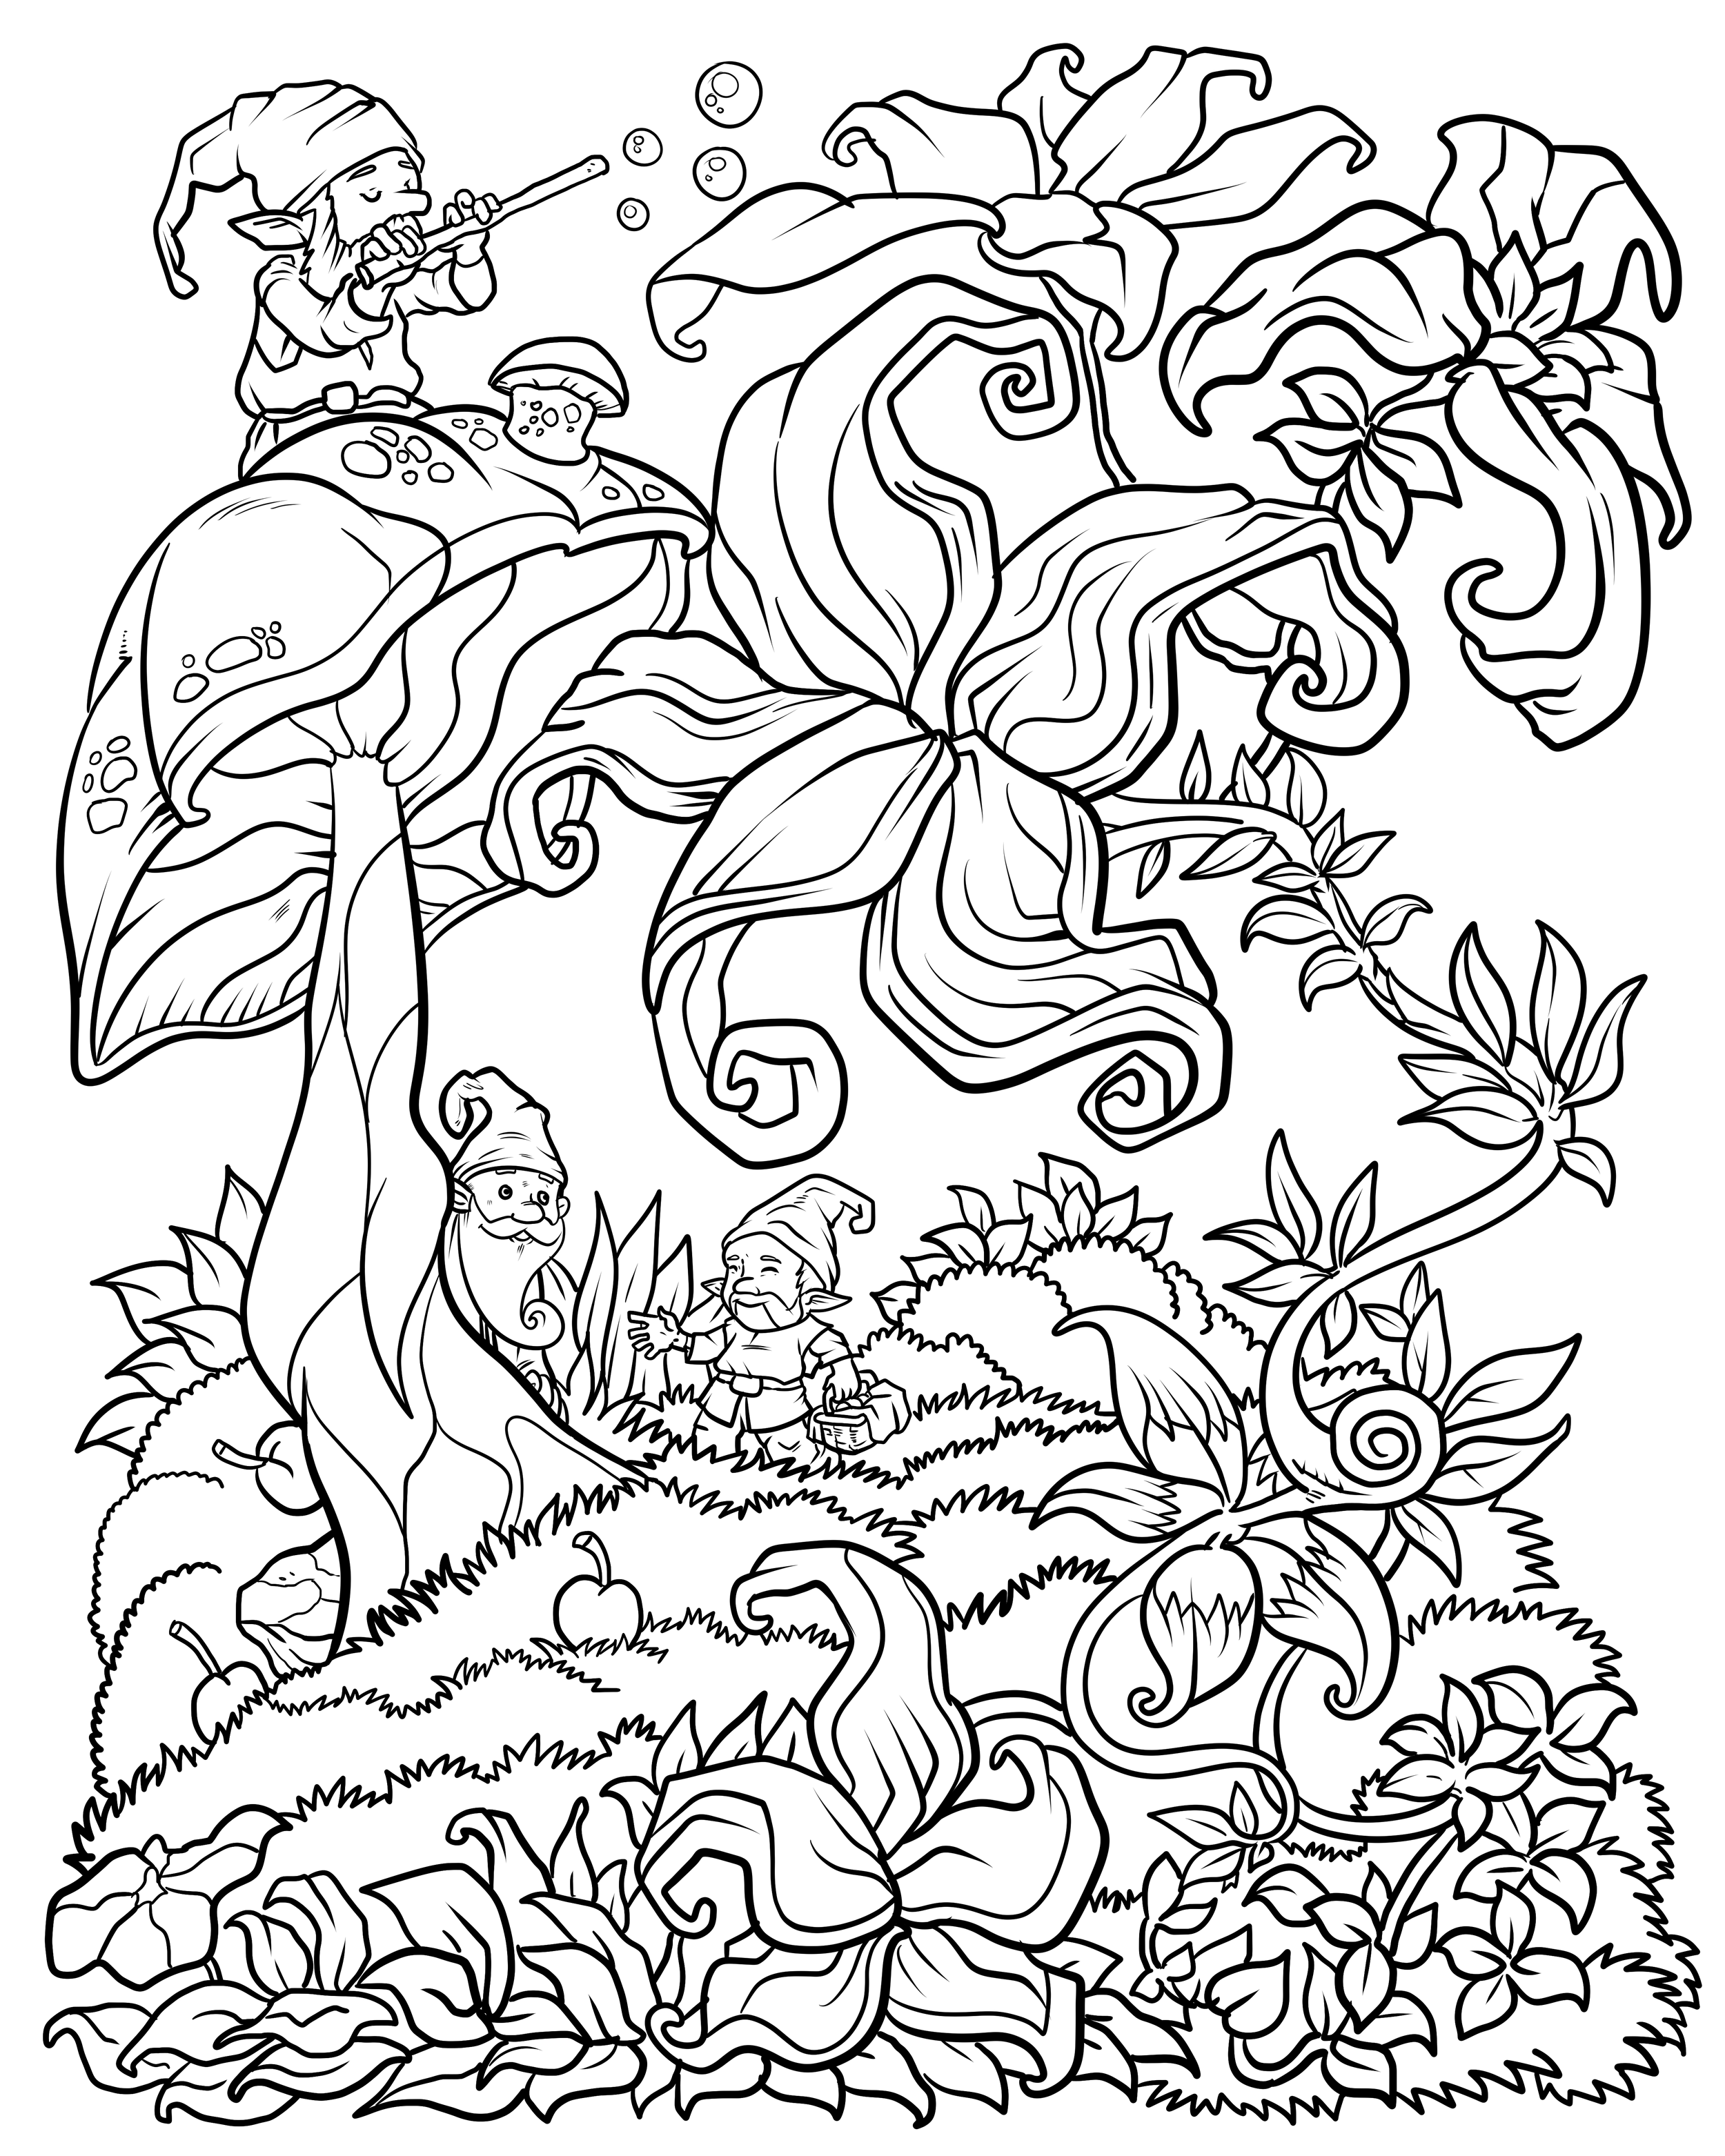 coloring book for adults coloring books for adults are a thing glamour book coloring for adults